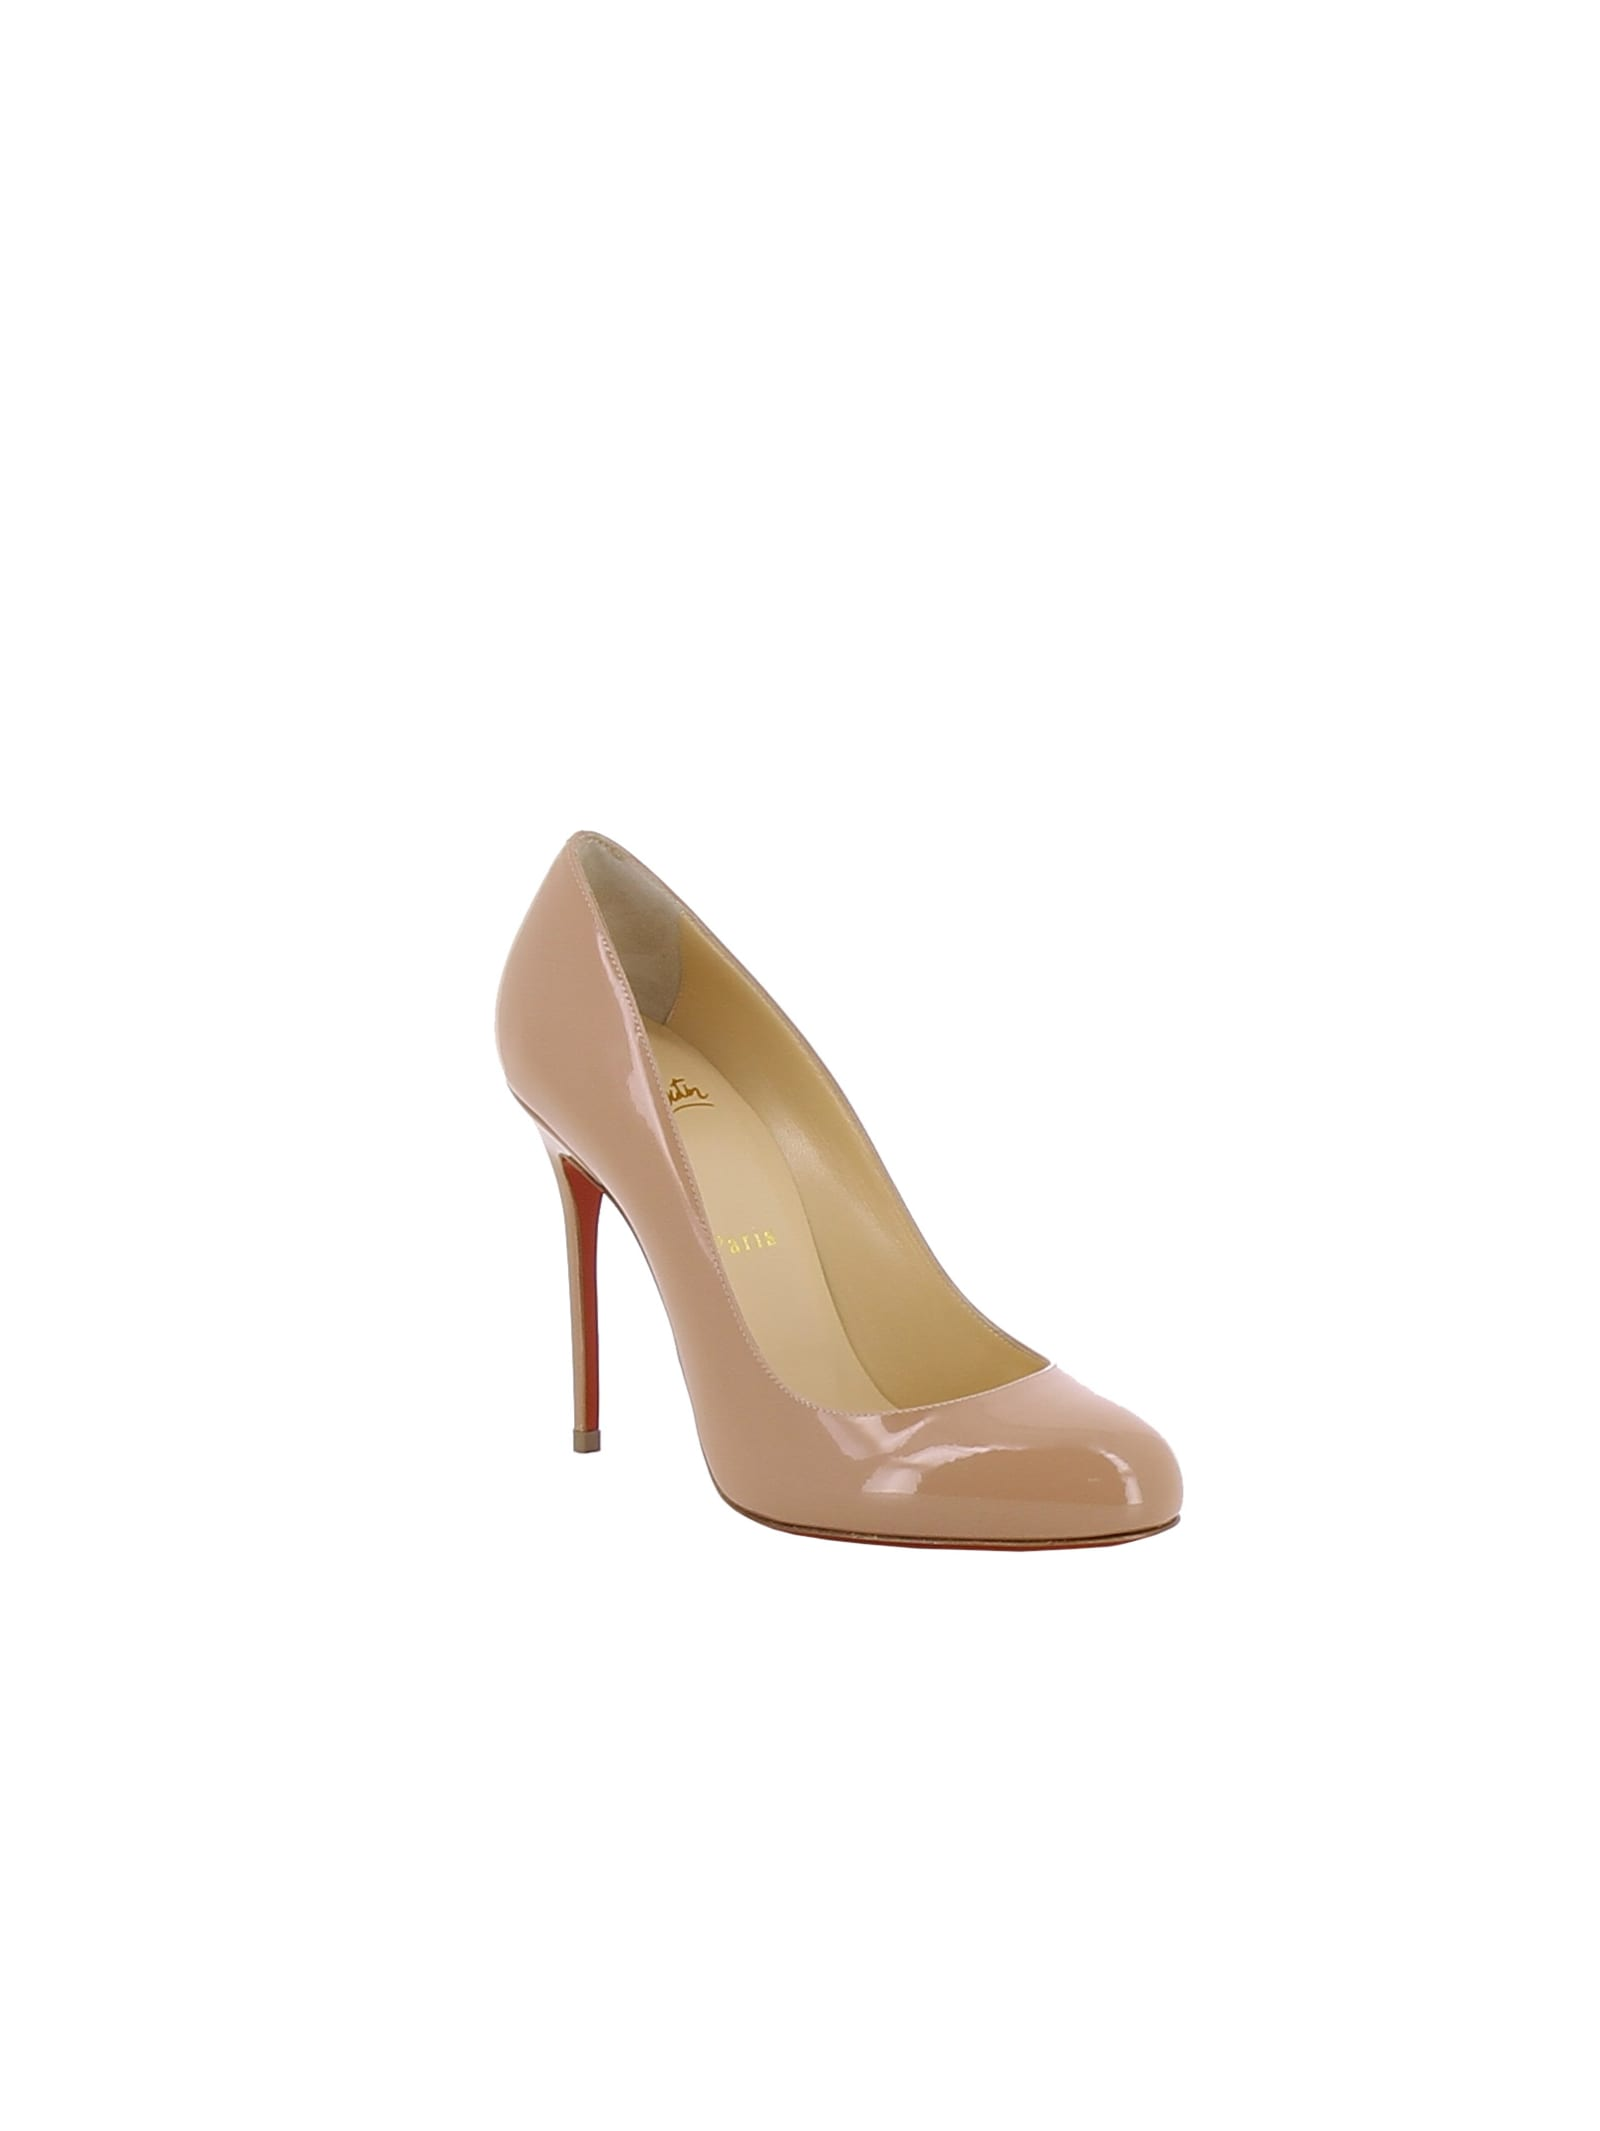 uk availability d3ac3 0f63c Christian Louboutin Fifi Pumps